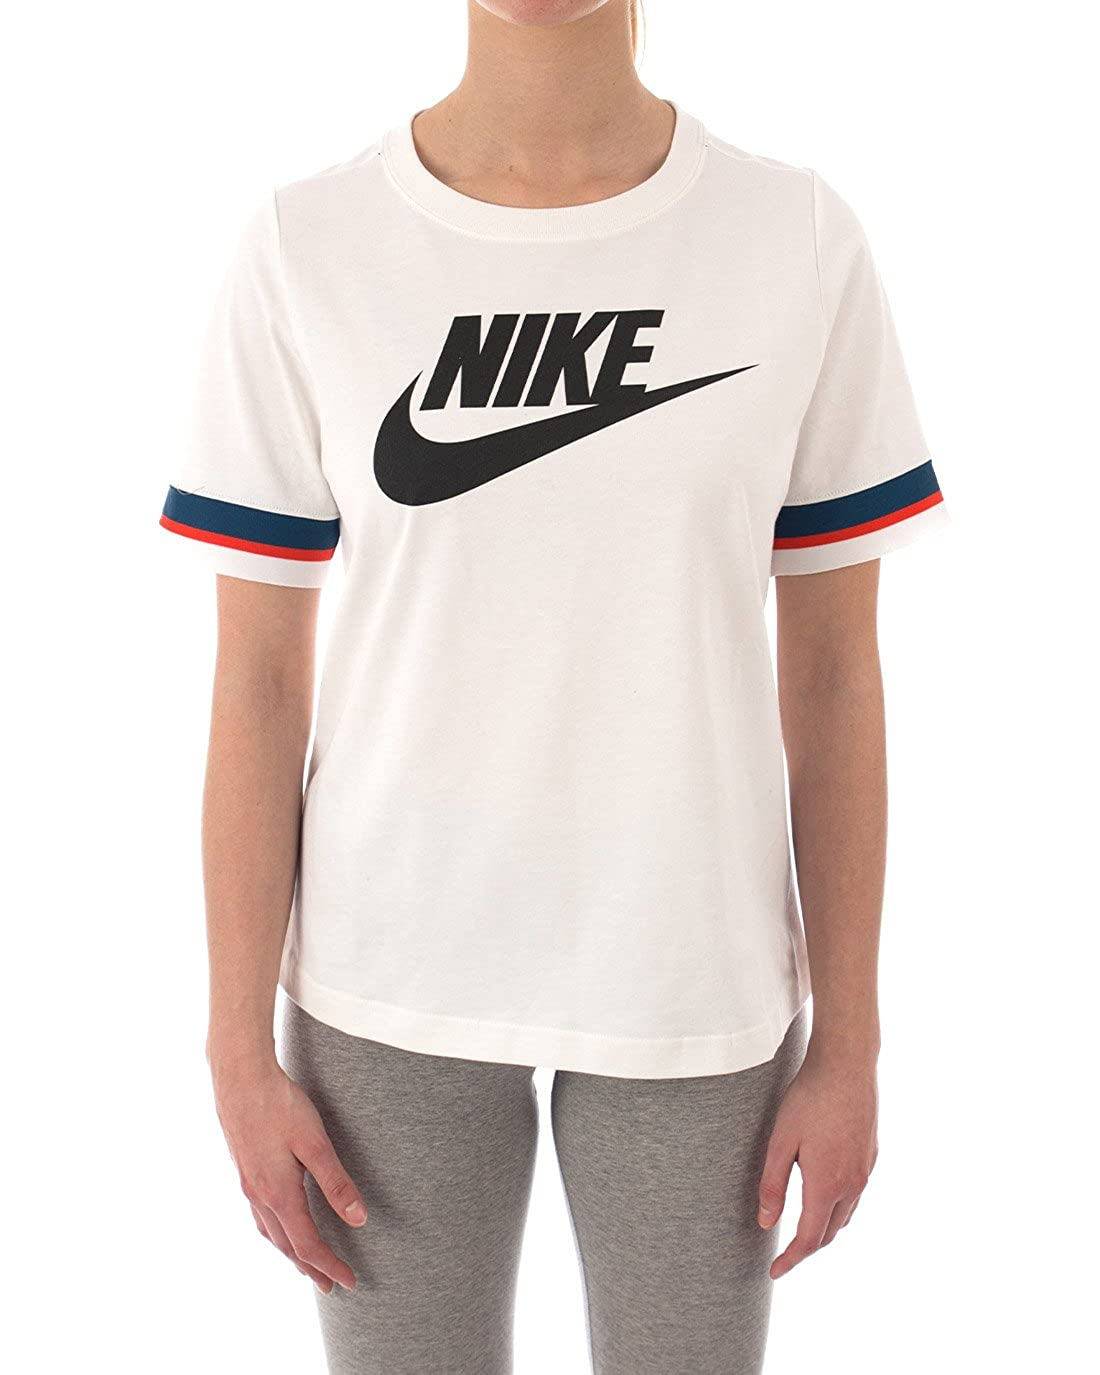 d9b7f19a Nike Womens 100% Cotton Logo Fitness T-Shirt, Ivory, X-Large at ...